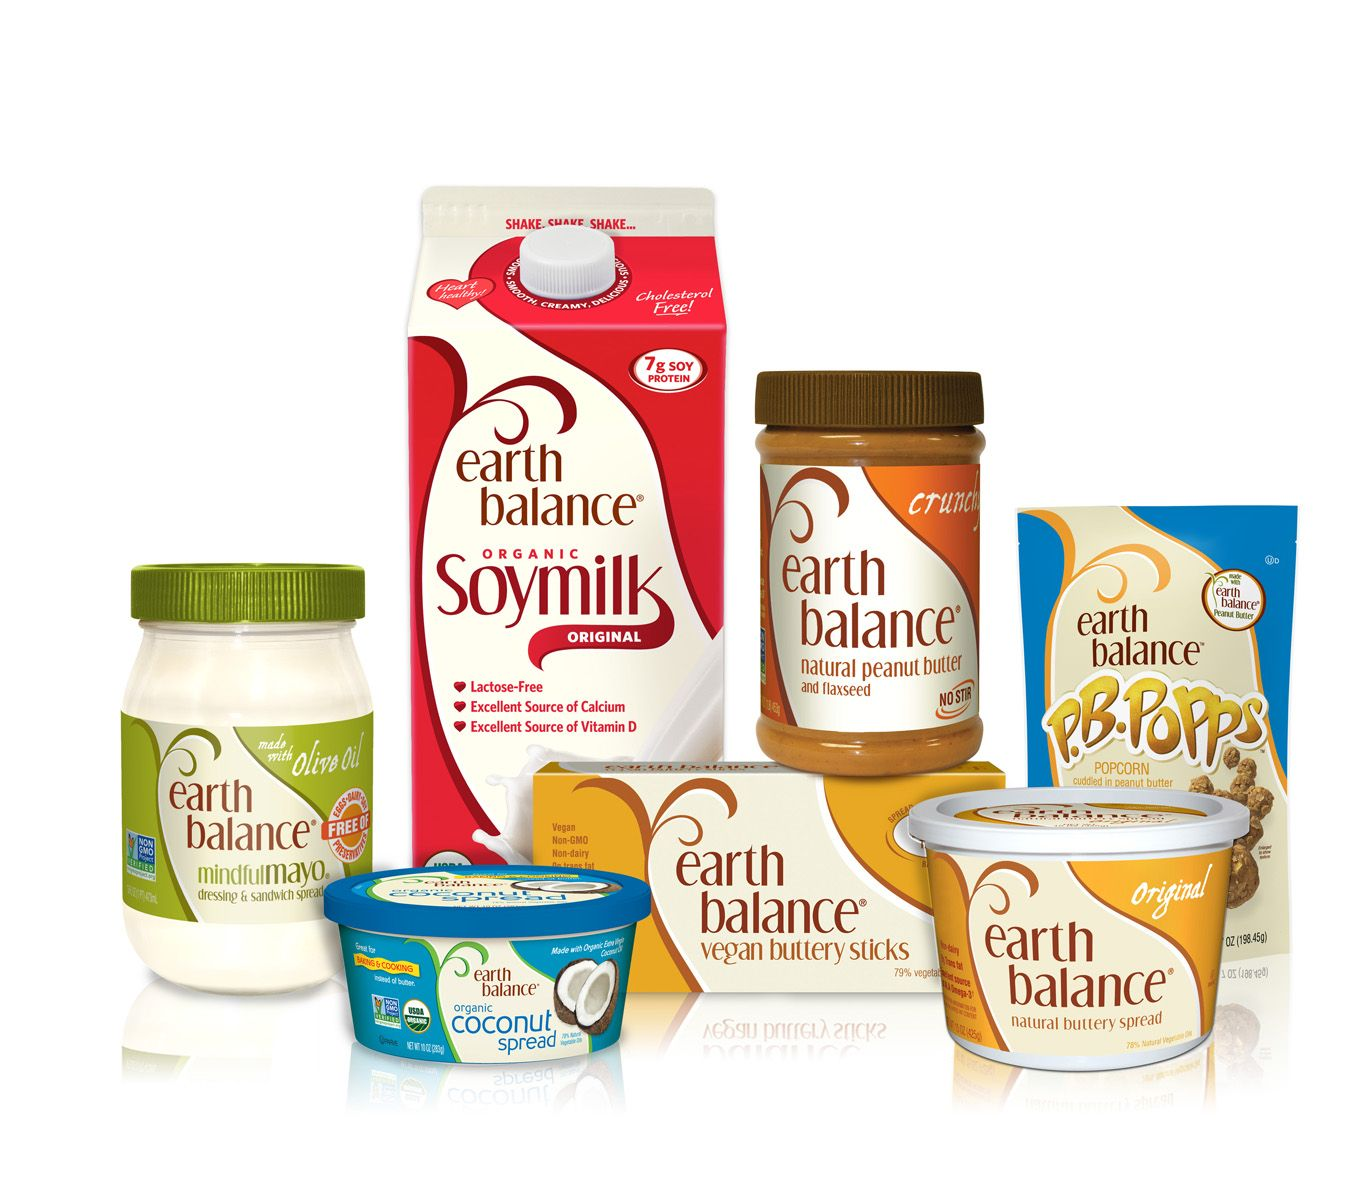 Save $1.00 off ANY (1) Earth Balance Product Coupon!